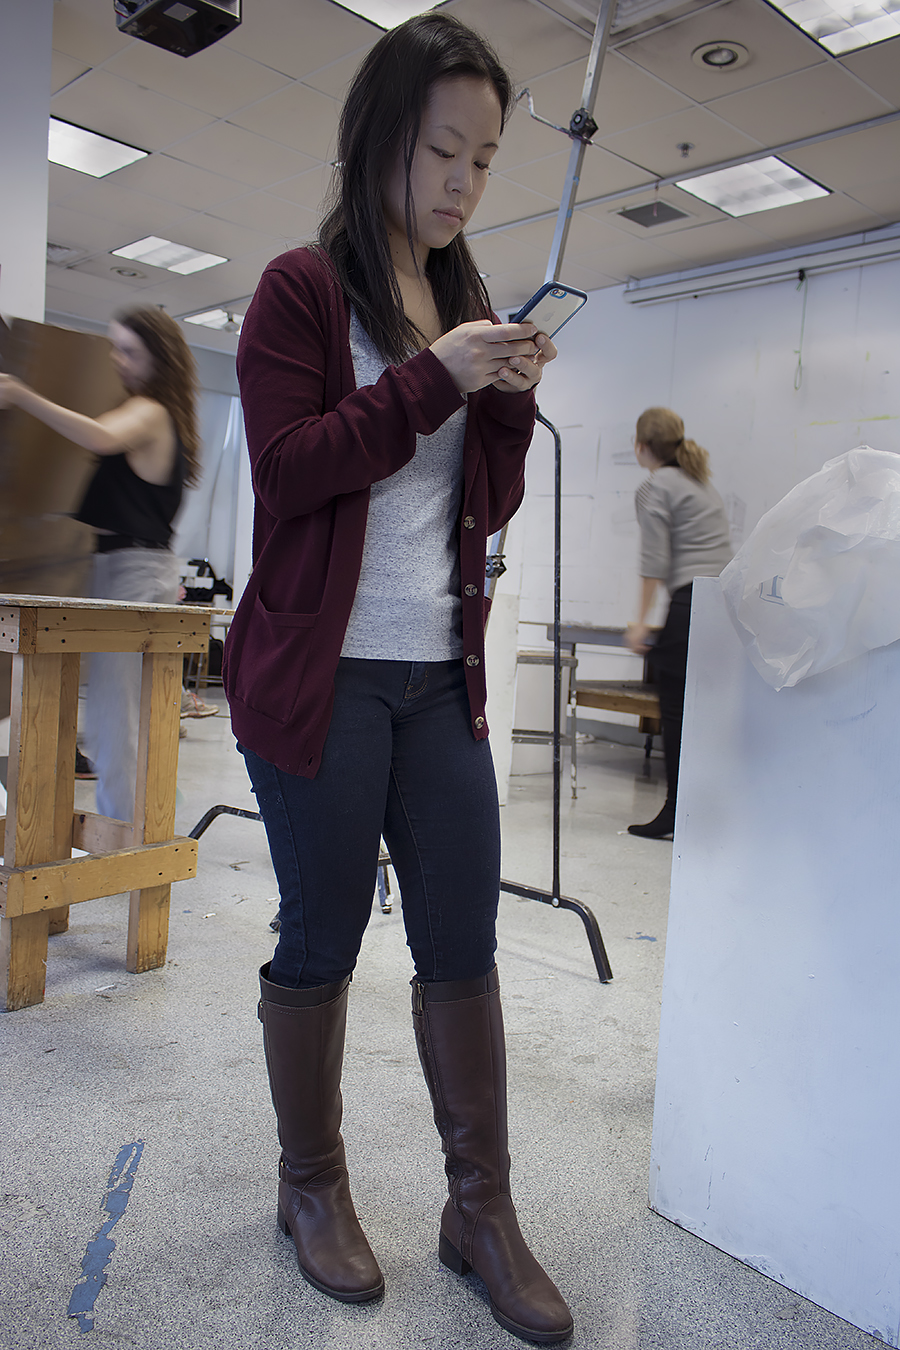 Tyler_Ling_photography_finearts_drawing_cellphones_absorbed_standing_fixed_socialmedia_texting_neuroscience_Cathy_Shao_Penn_sideshot_unaware